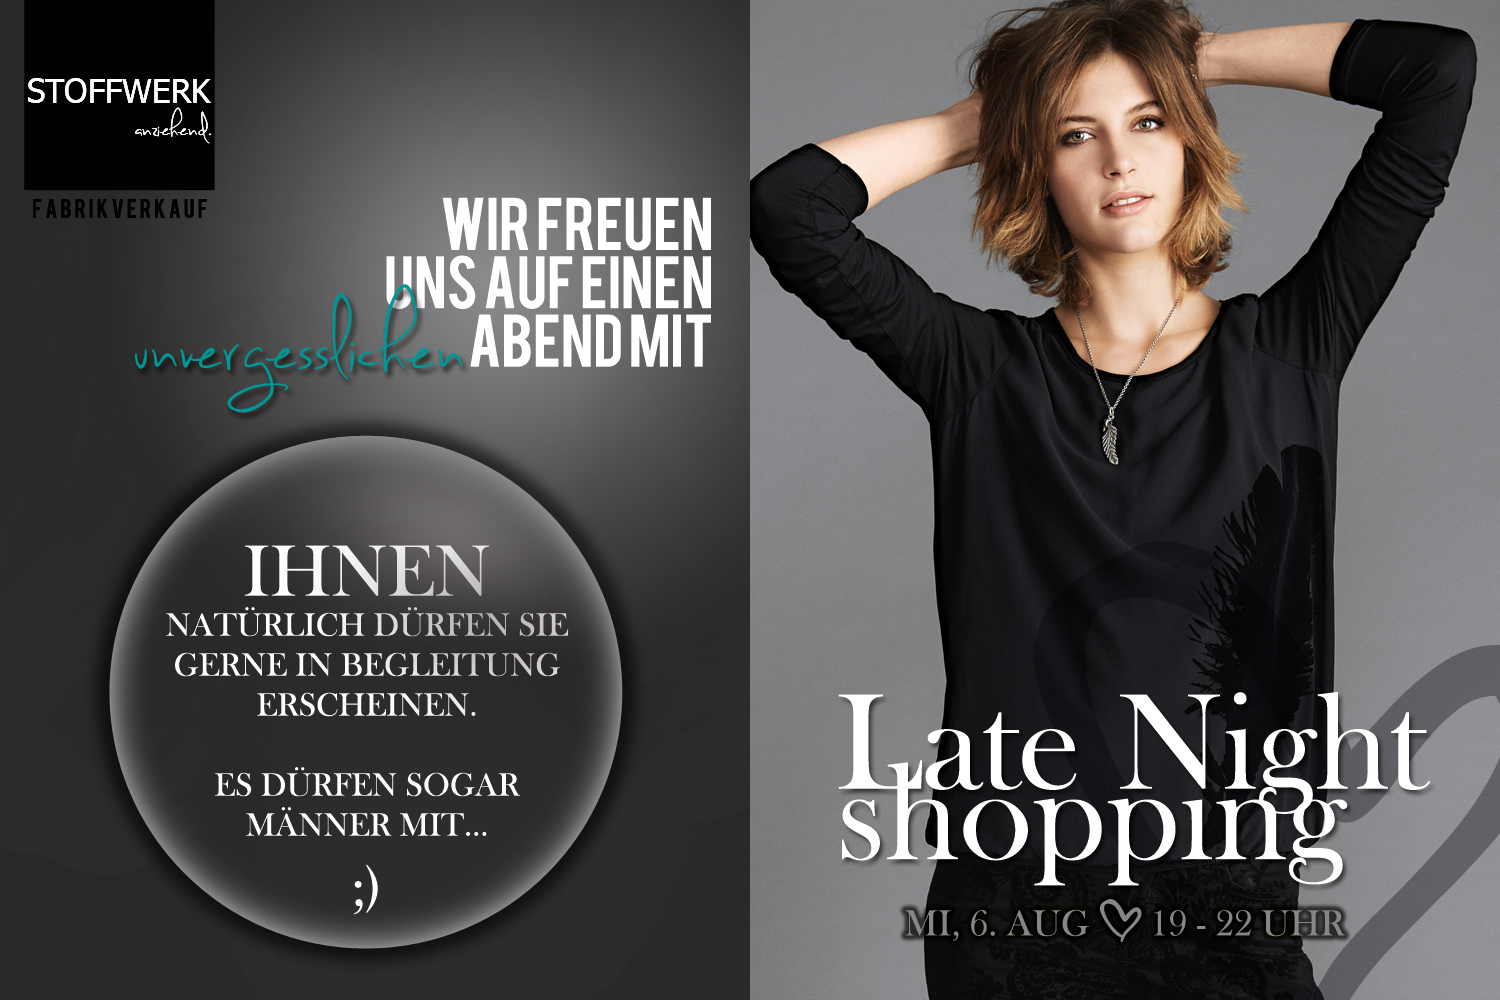 Late Night Shopping // 6. Aug // 19 – 22 Uhr